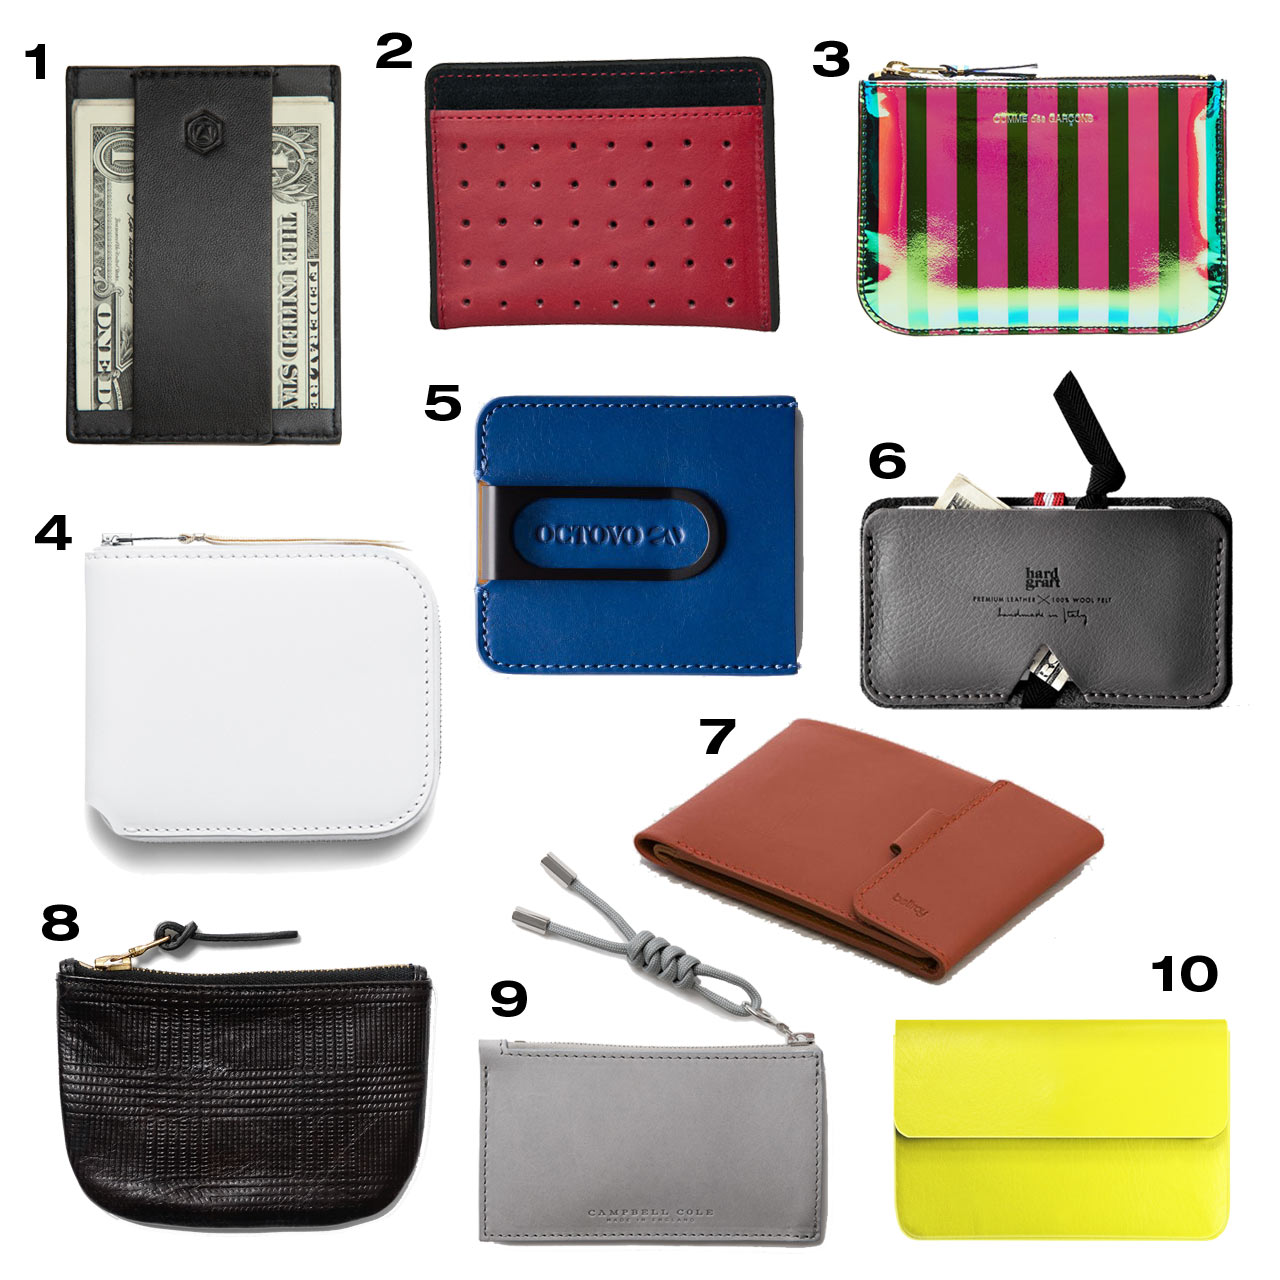 10 Small Leather Accessories for Your Pocket